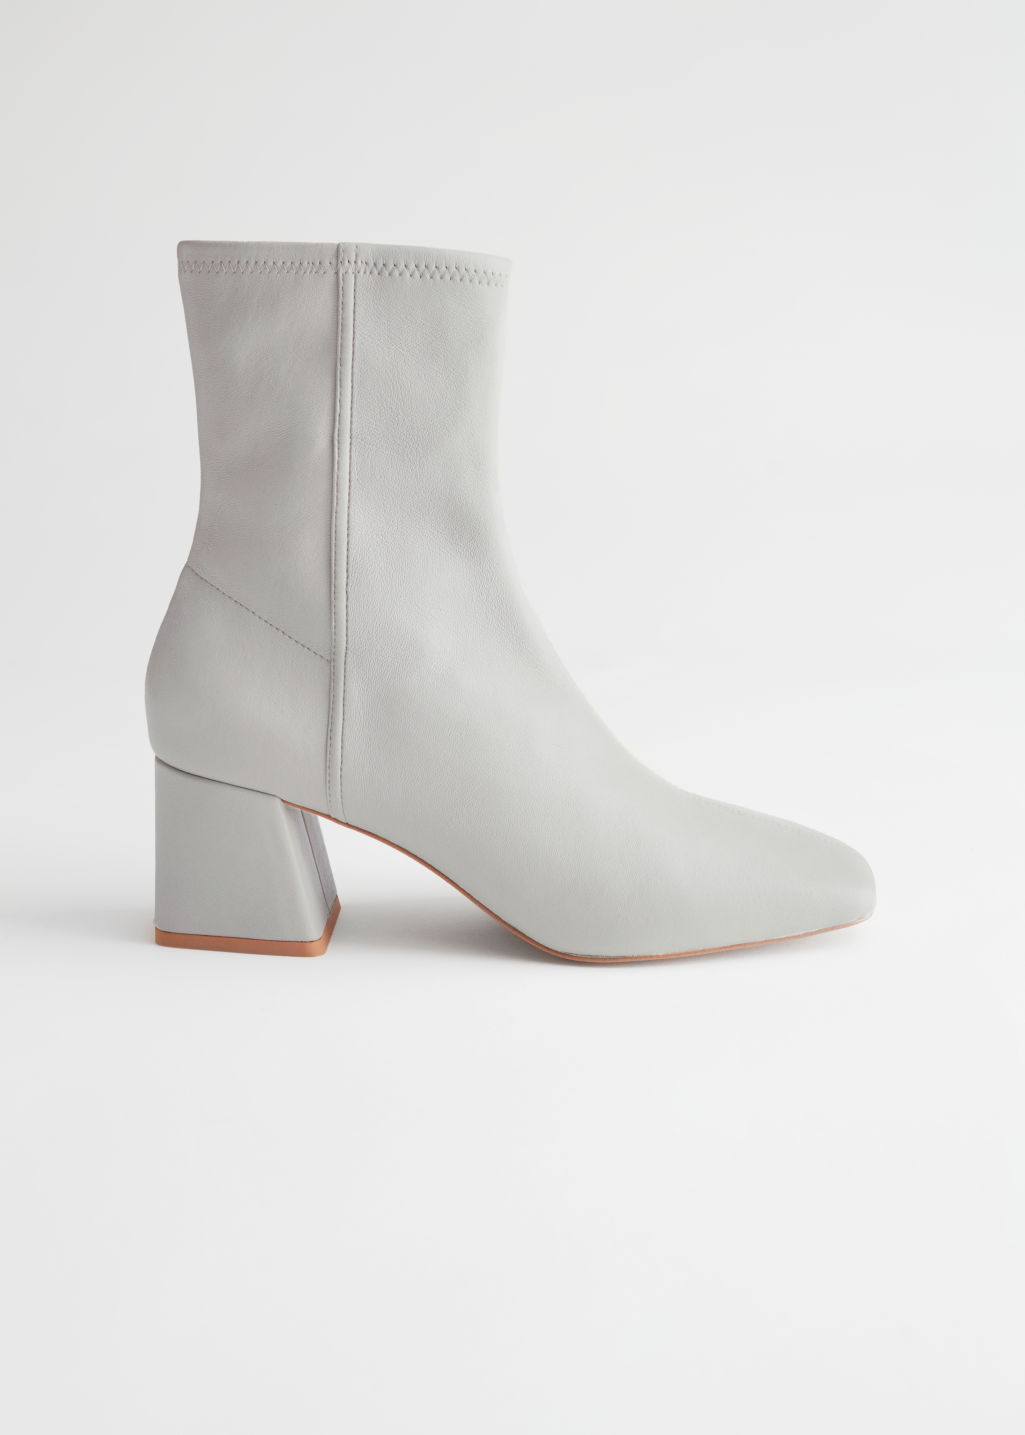 StillLife Side Image of Stories Square Toe Leather Boots in Grey